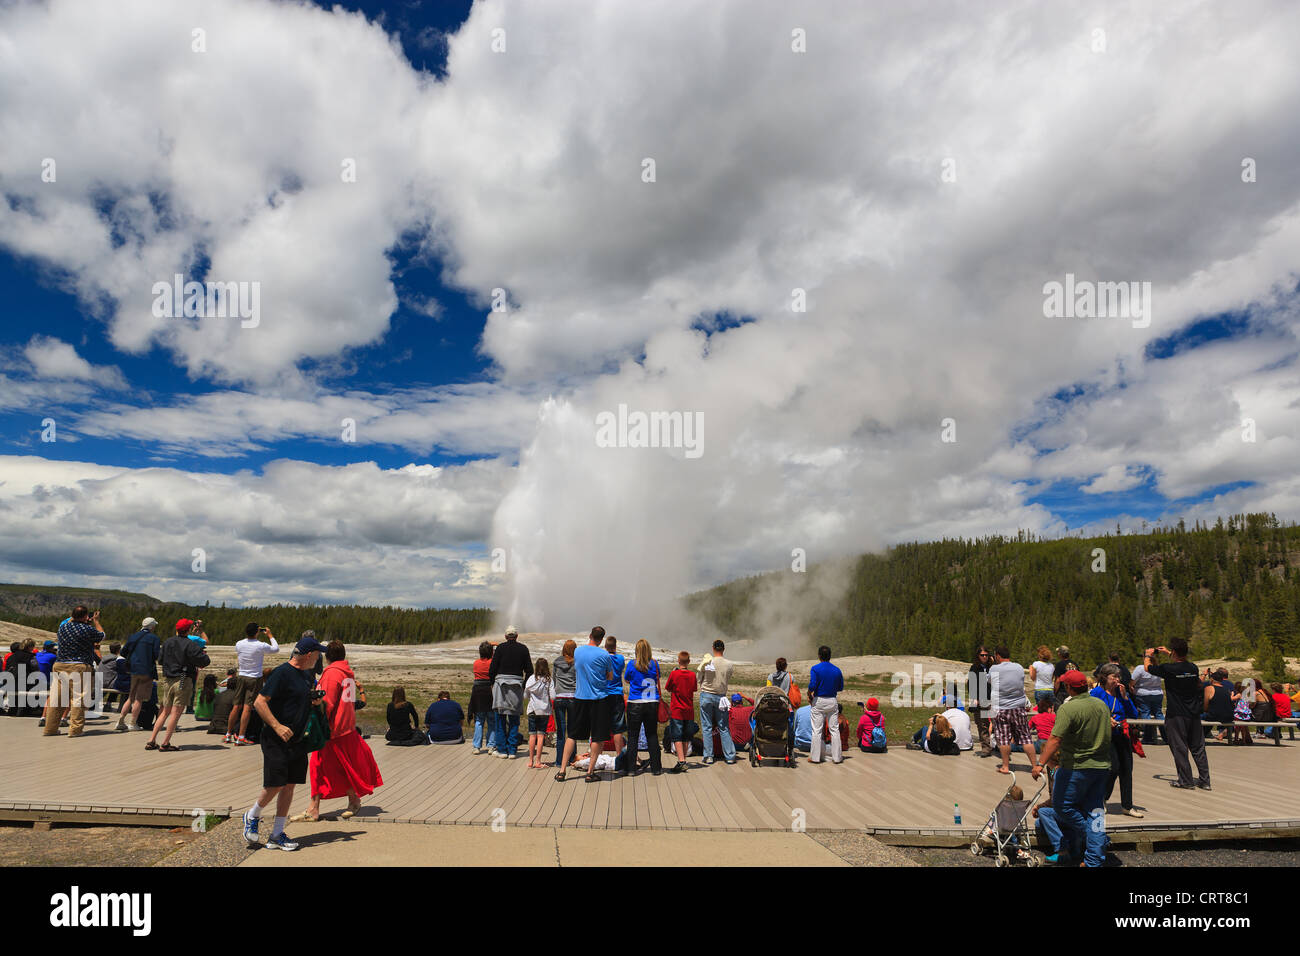 People watching Old Faithfull geyser in Yellowstone National